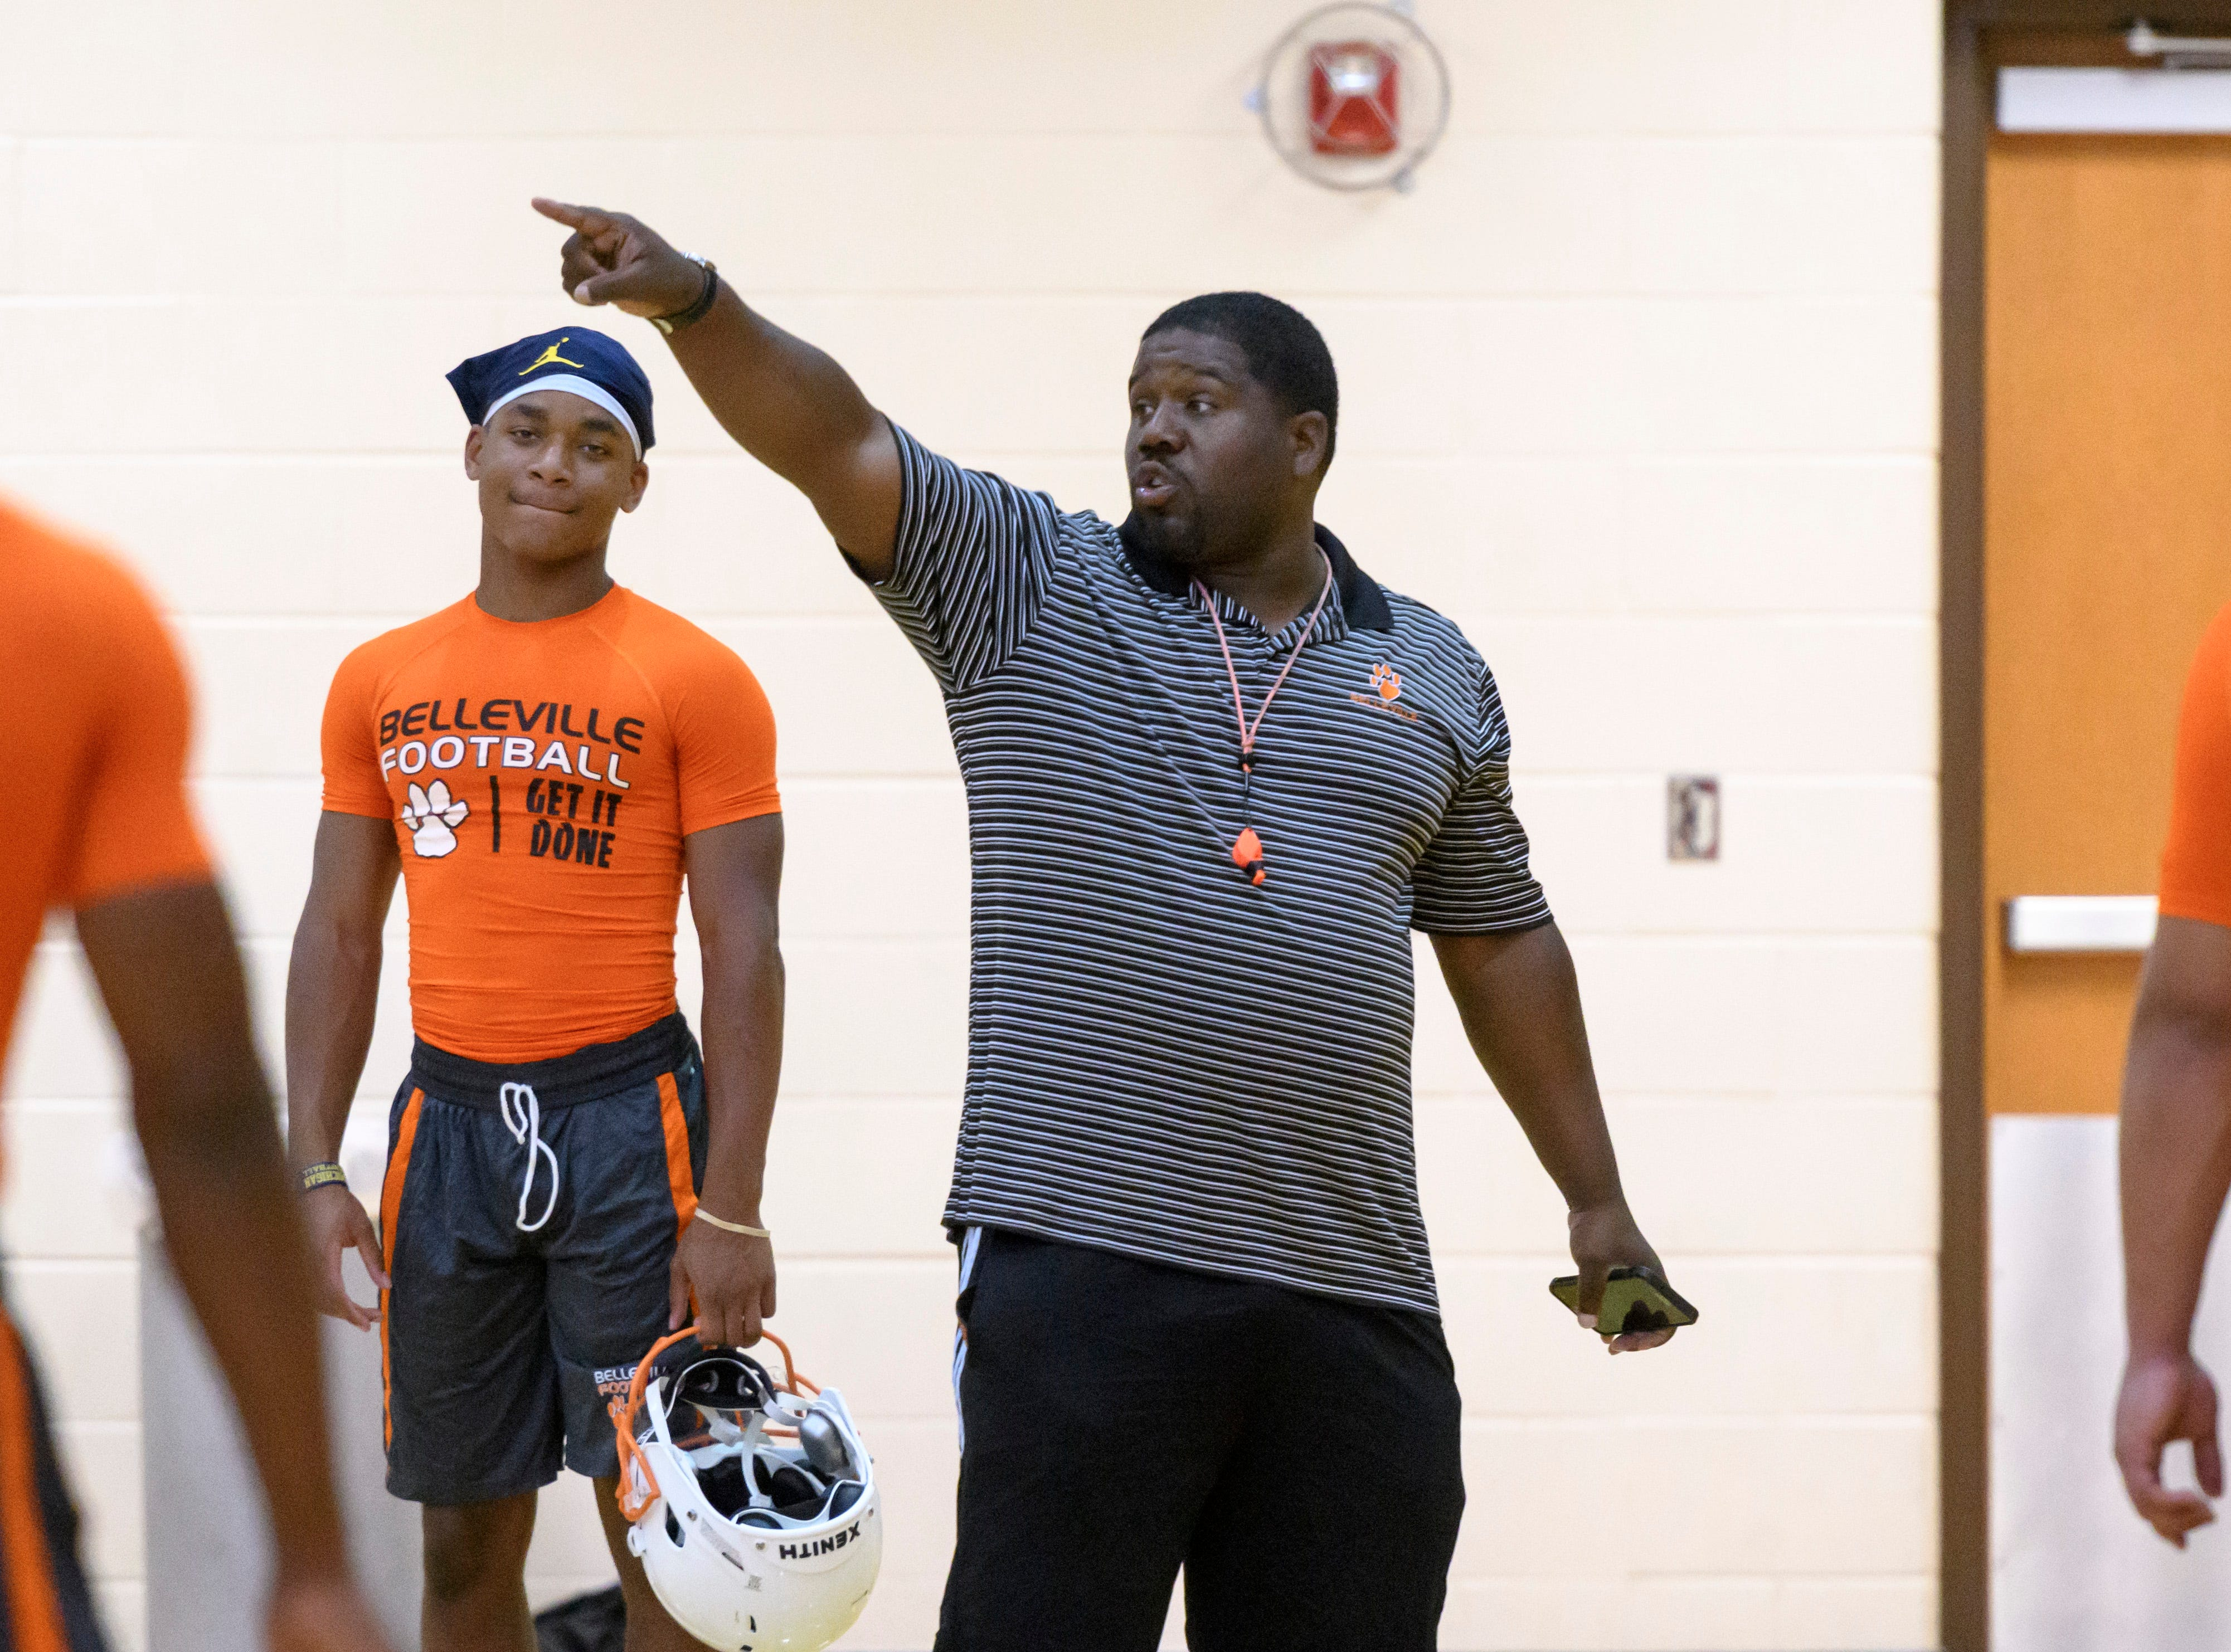 Belleville head football coach Jermain Crowell gives directions to his players during the team's first practice of the season in the gym.